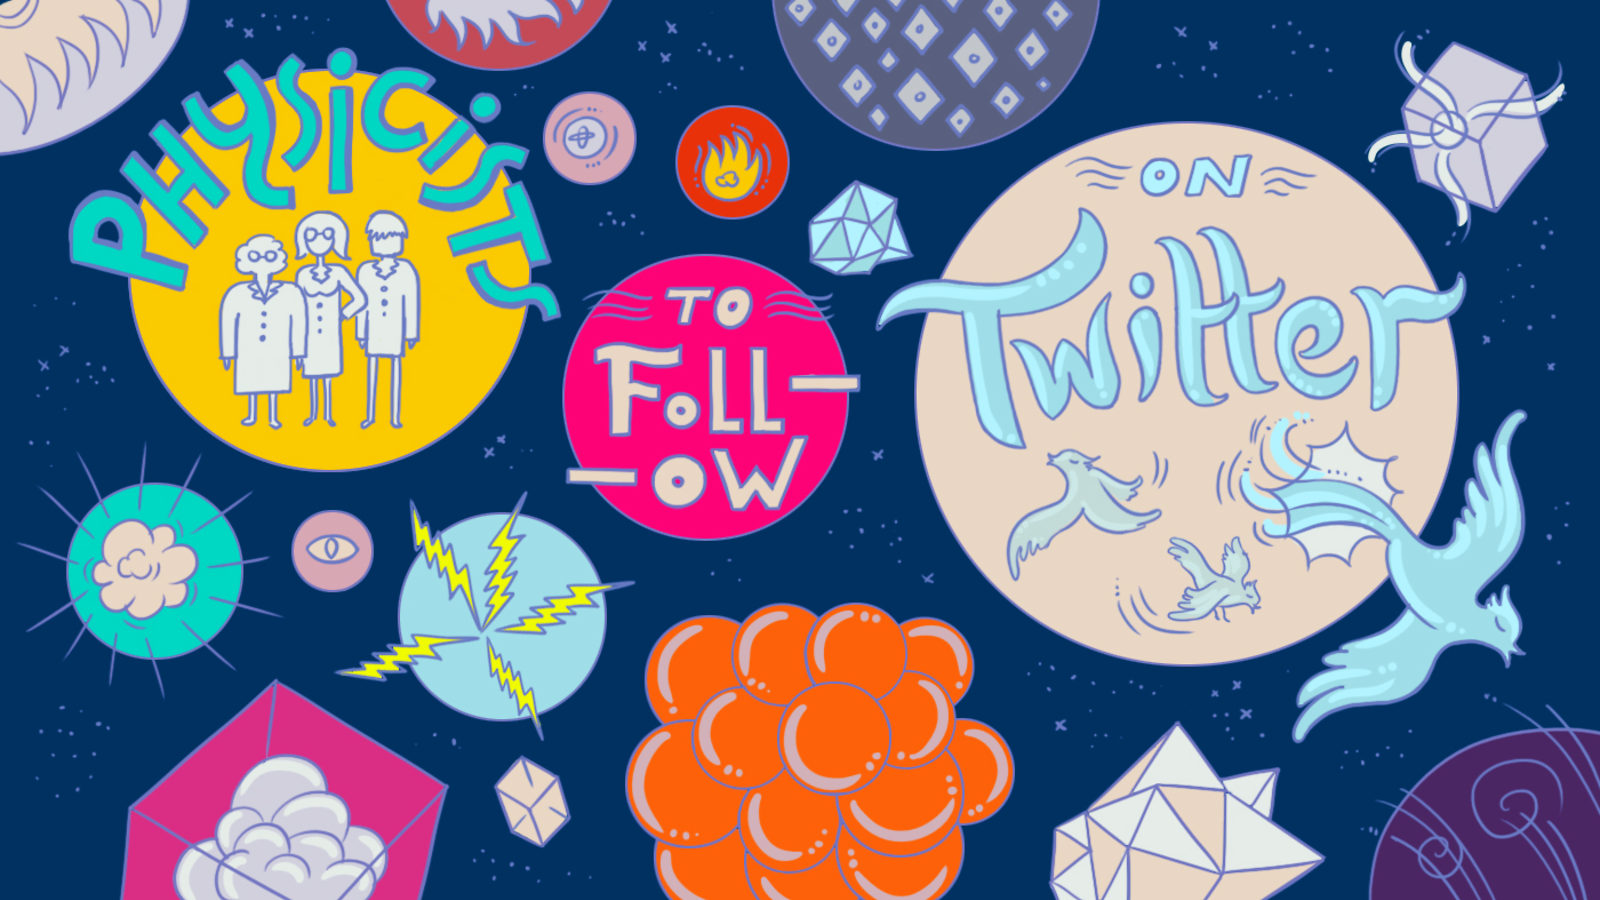 Illustration of physicists to follow on Twitter